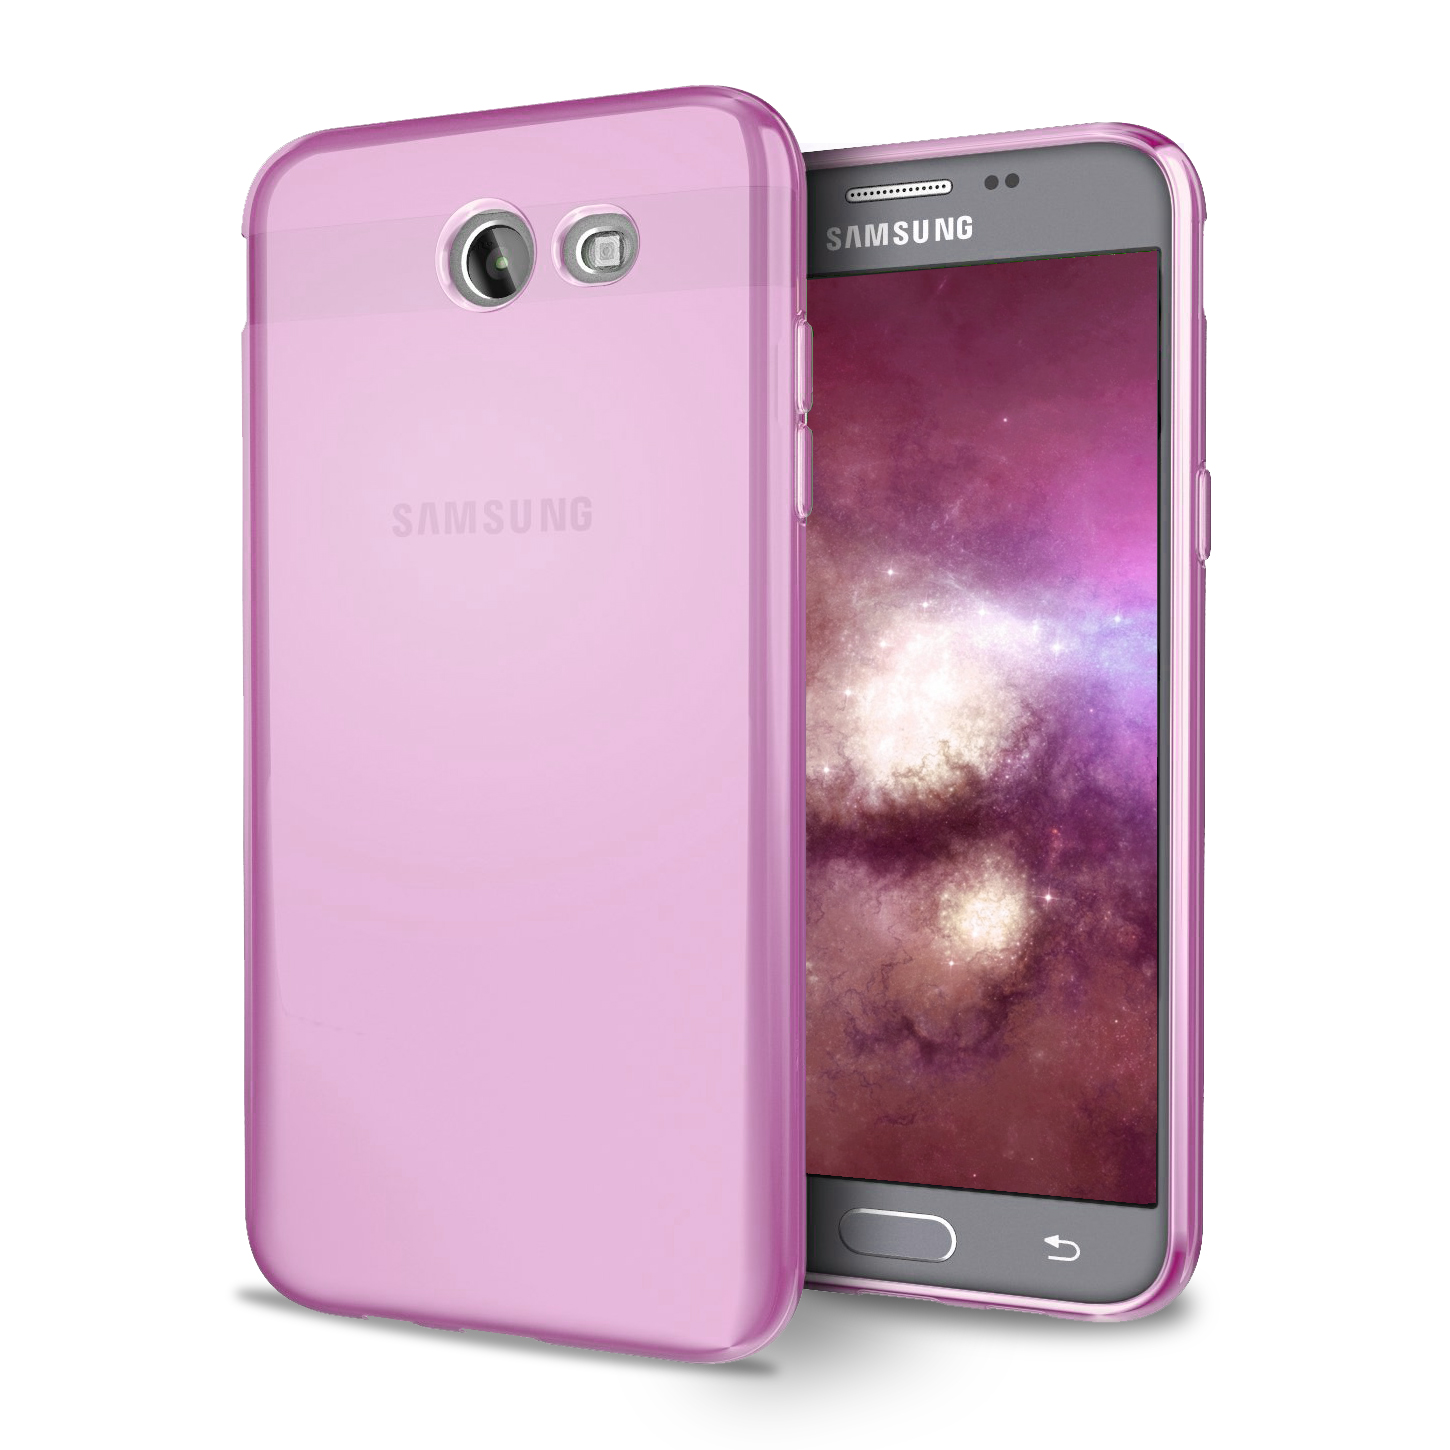 Shop Best Buy for Samsung Galaxy Tablets. Find great prices on the Galaxy Note and Tab models and accessories.